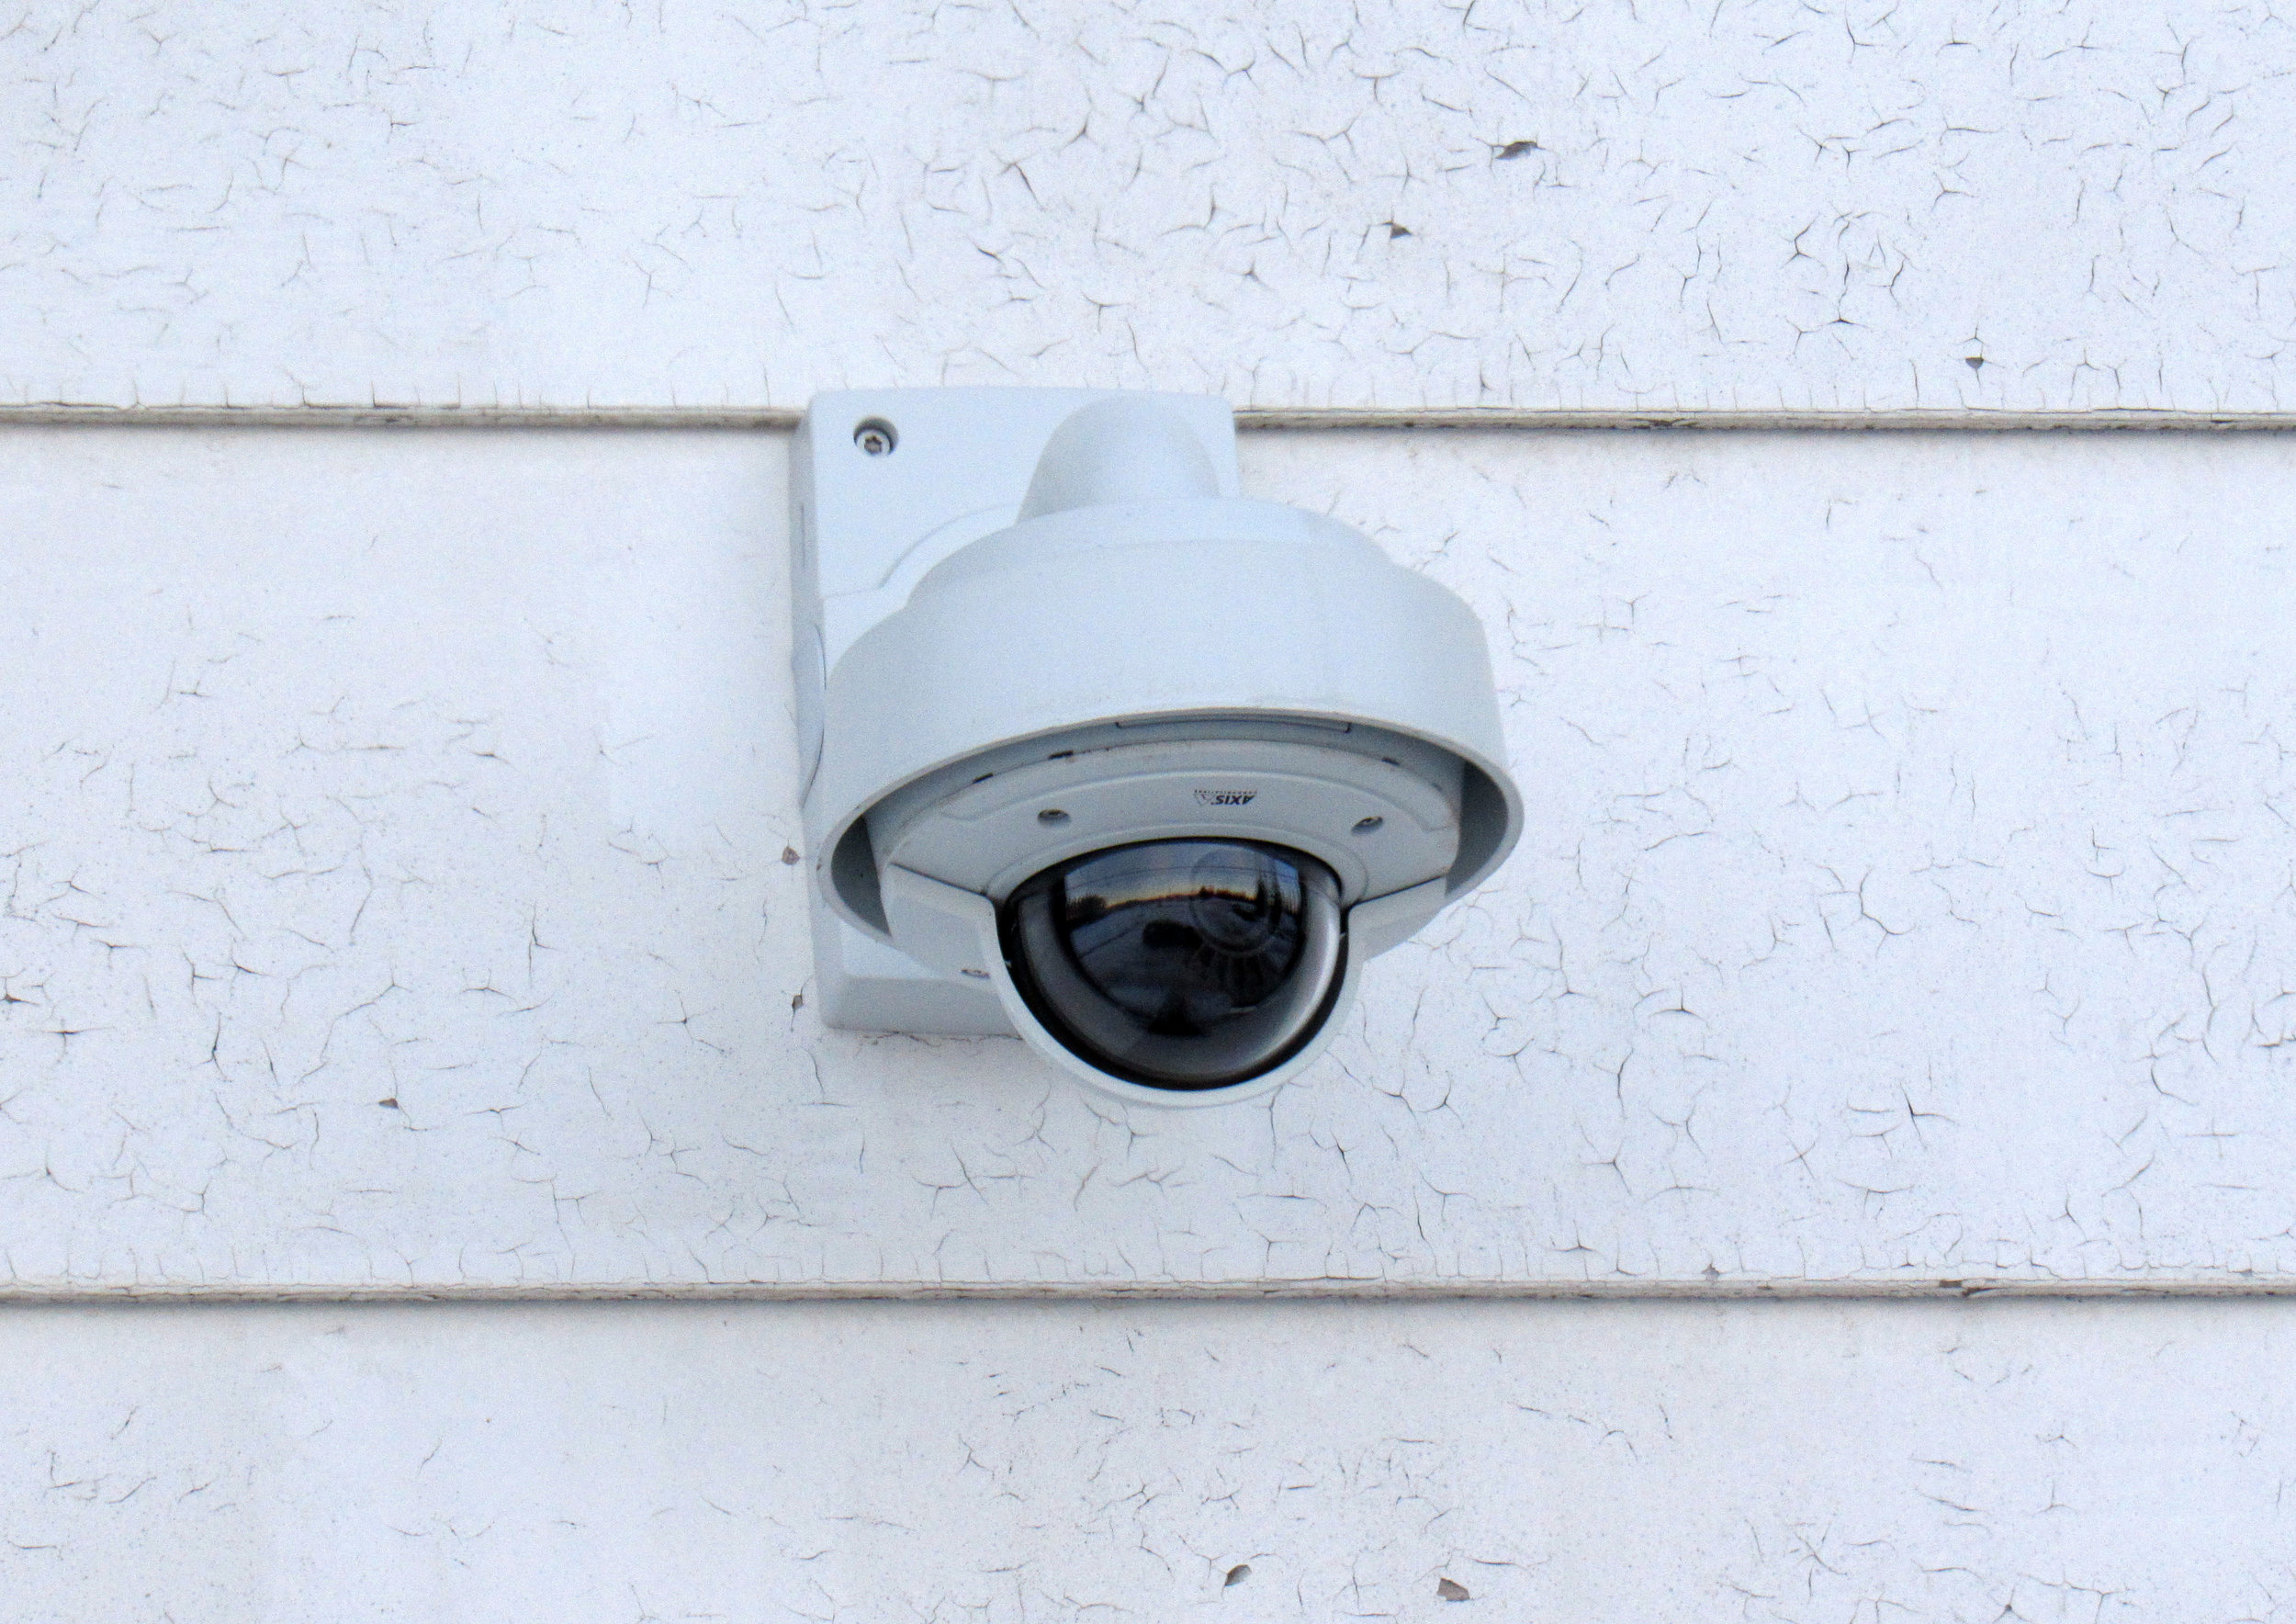 Lan Tech Services Grande Prairie Alberta Door Access Systems, Paging Systems and Security Systems Installer